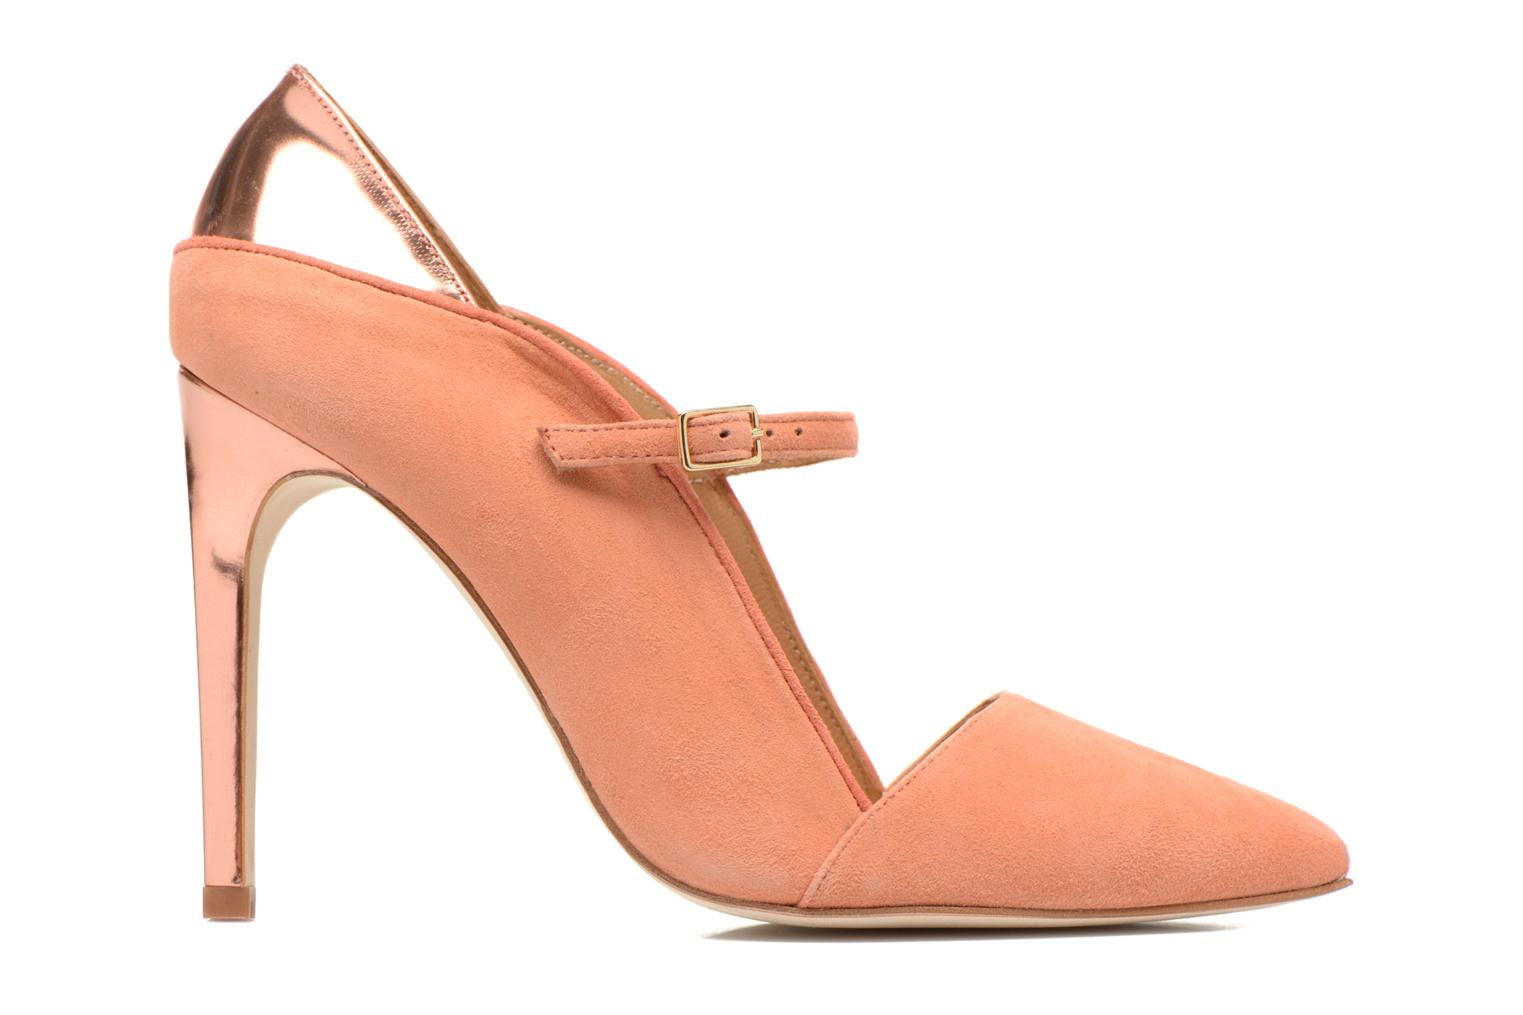 Marques Chaussure femme Made by SARENZA femme Busy Girl Escarpins #2 Ante Apricot + Ante halo + specchio 309